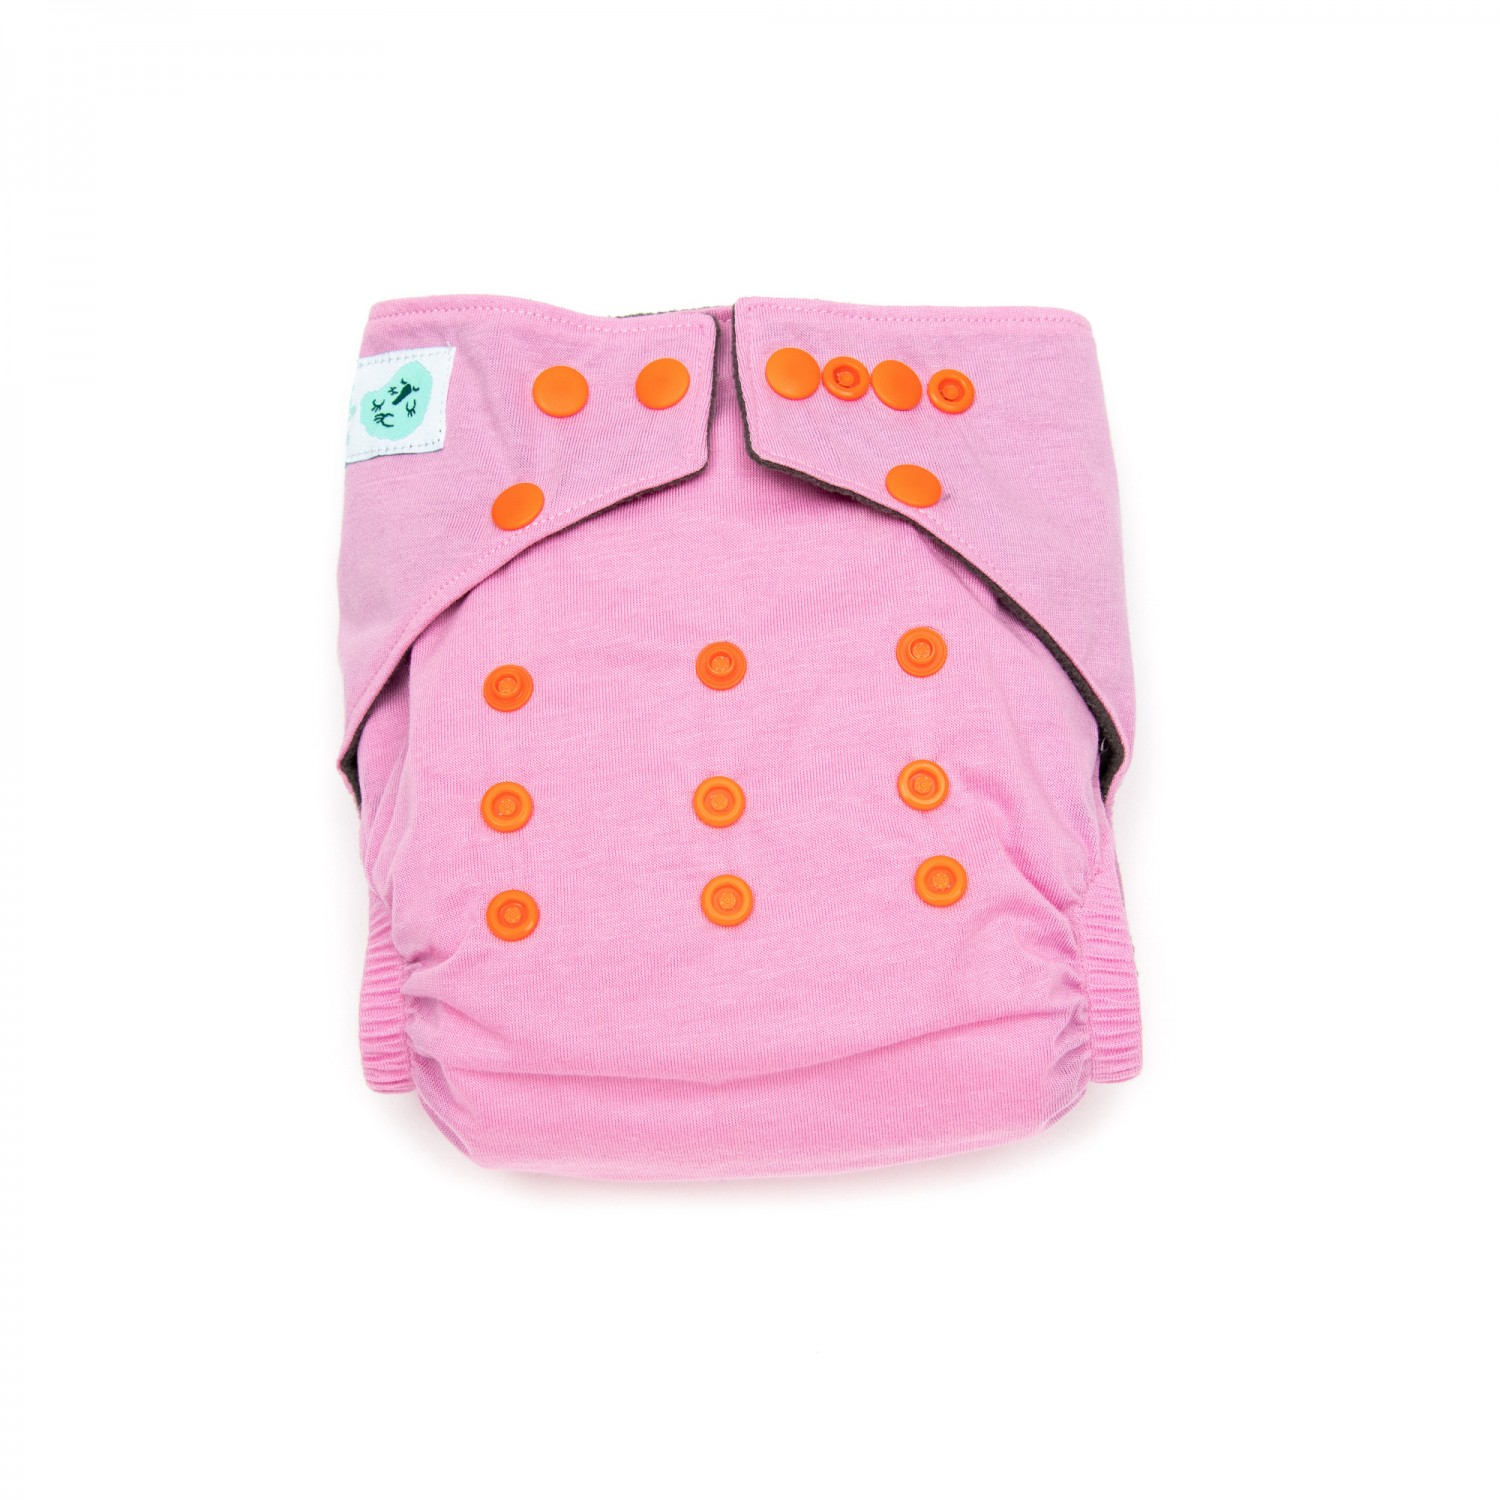 Modern Cloth Nappy – 4mo to 2.5yr – includes 2 inserts – Pink Lemonade